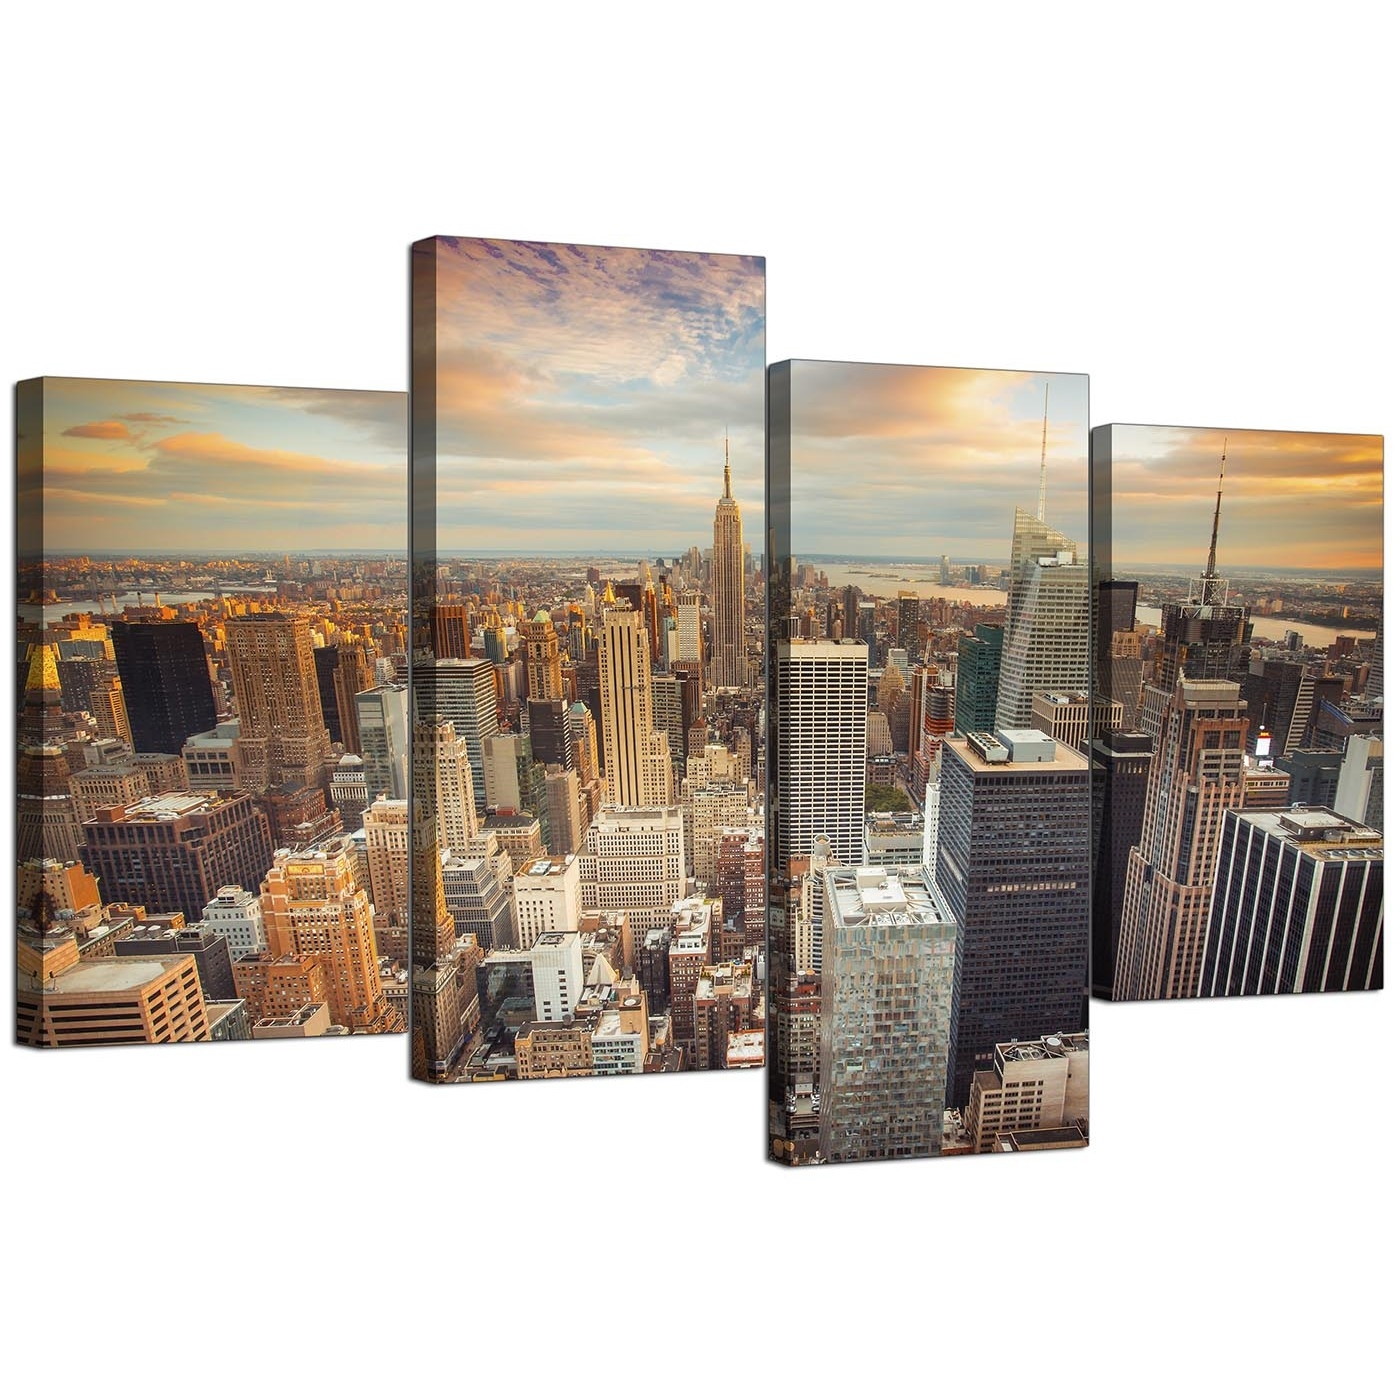 Canvas Prints Of The New York Skyline For Your Living Room – 4 Panel Intended For Latest New York Canvas Wall Art (View 6 of 15)